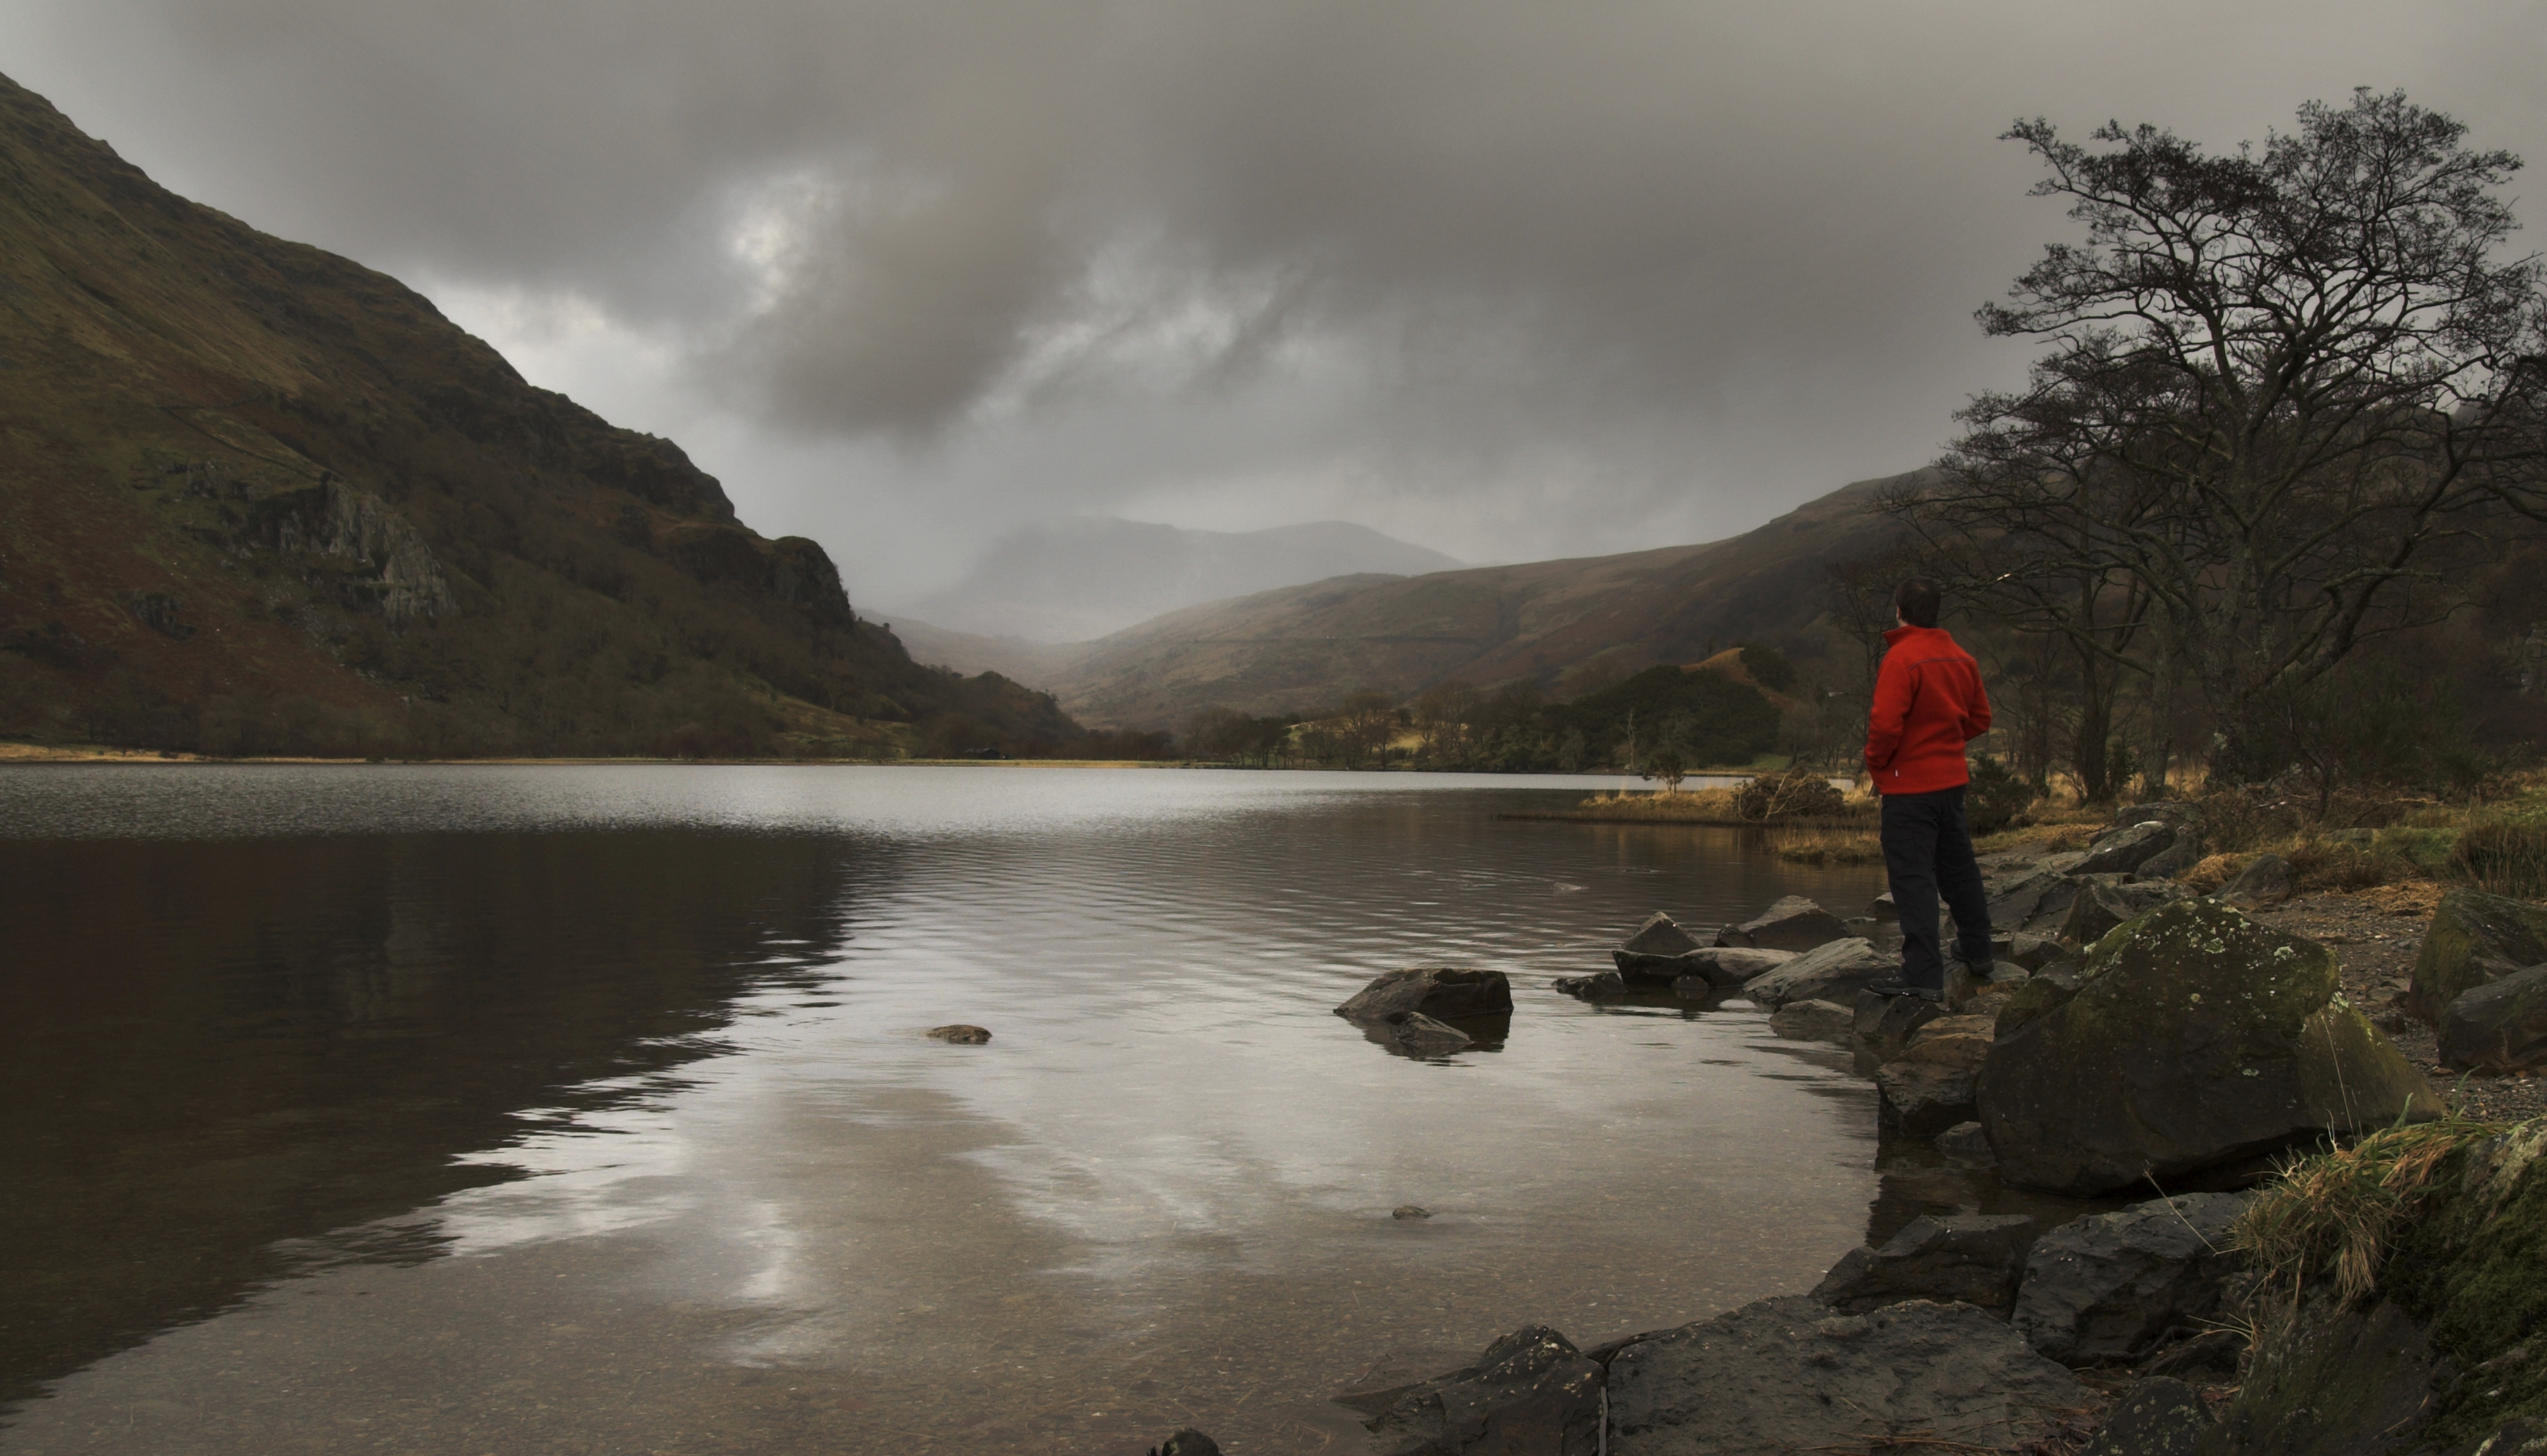 A lake in Brecon Beacons, Wales